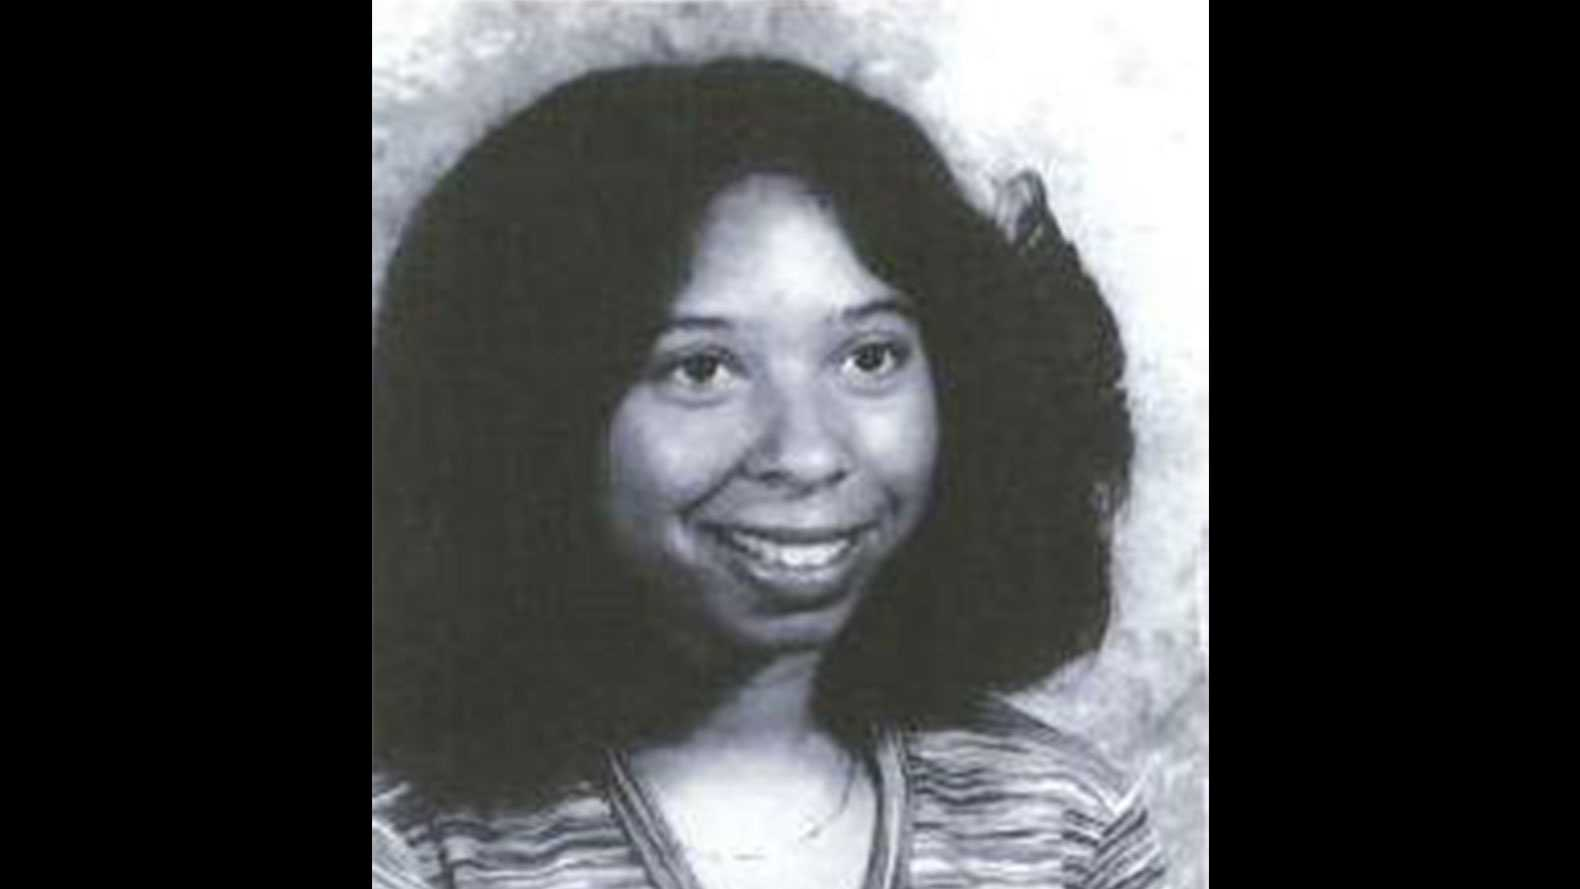 The unsolved murder of disabled Sacramento High School student Mary London remains a mystery 35 years later.